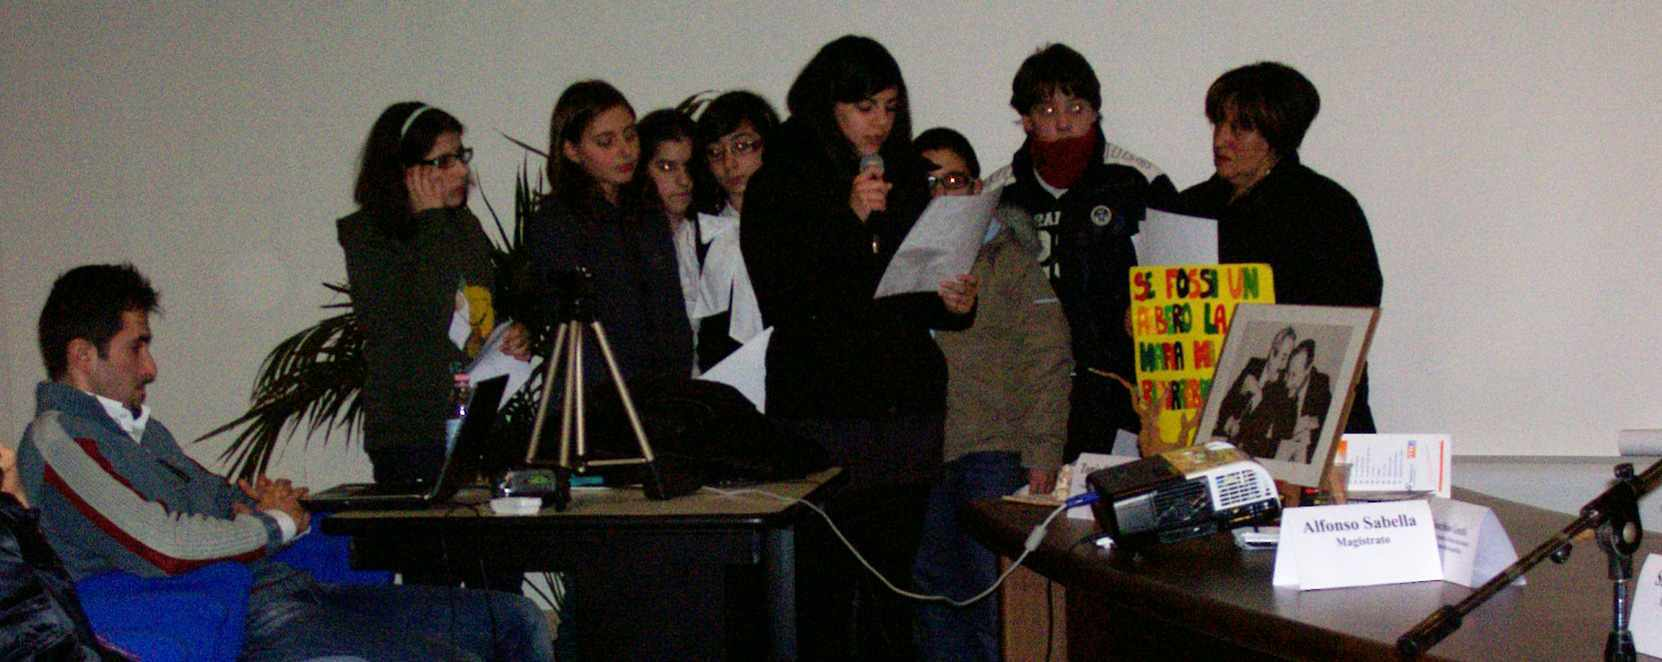 foto-liceo-scientifico-026